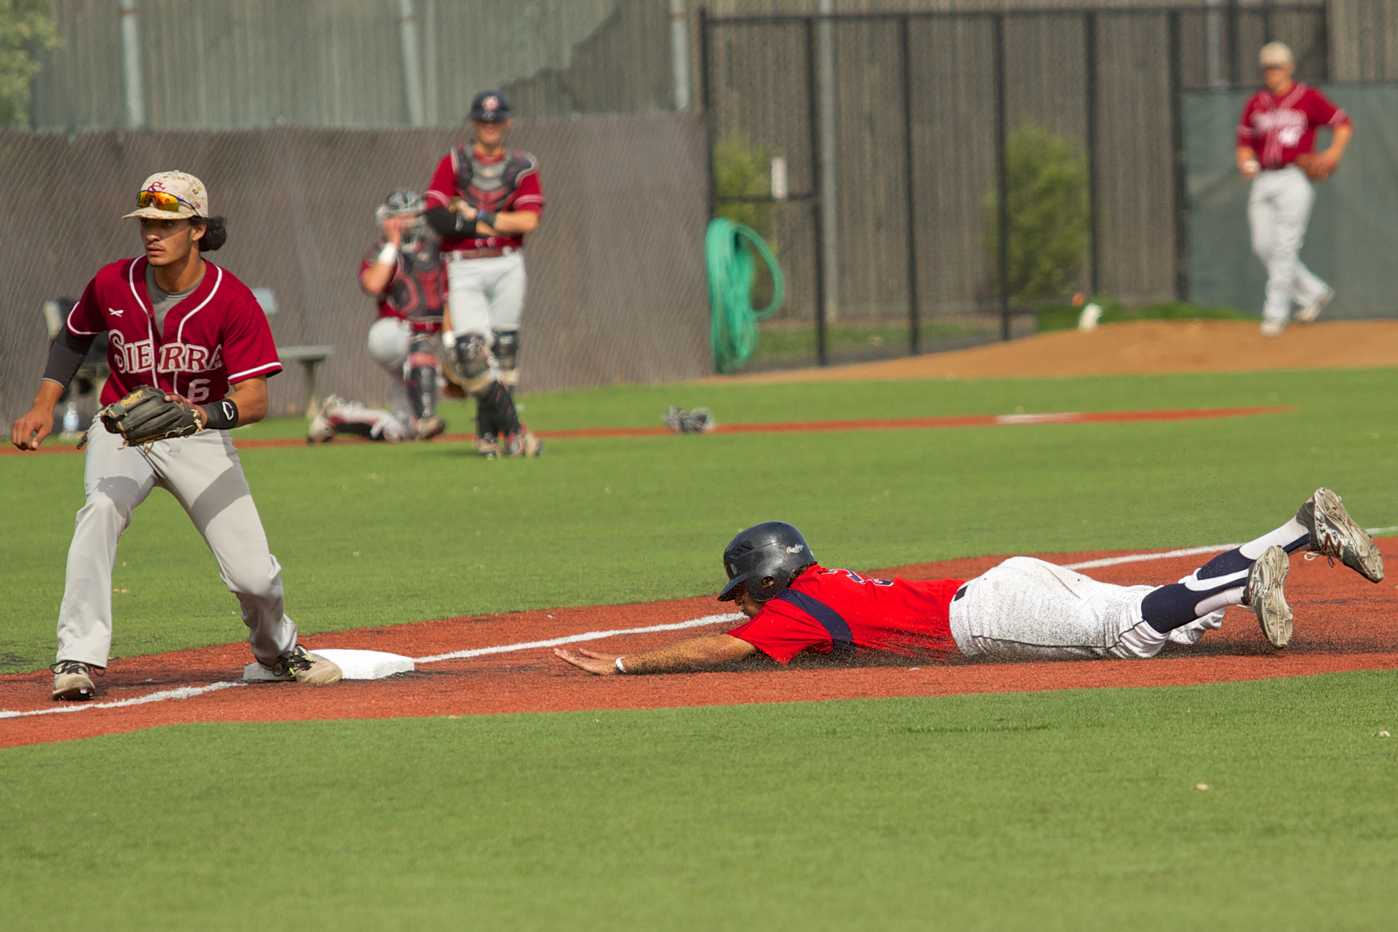 Jake Scheiner steals third base on a passed ball against Sierra College April 24 at Sypher Field. The Bear Cubs swept with a 26-10 overall record and a 15-6 conference record.